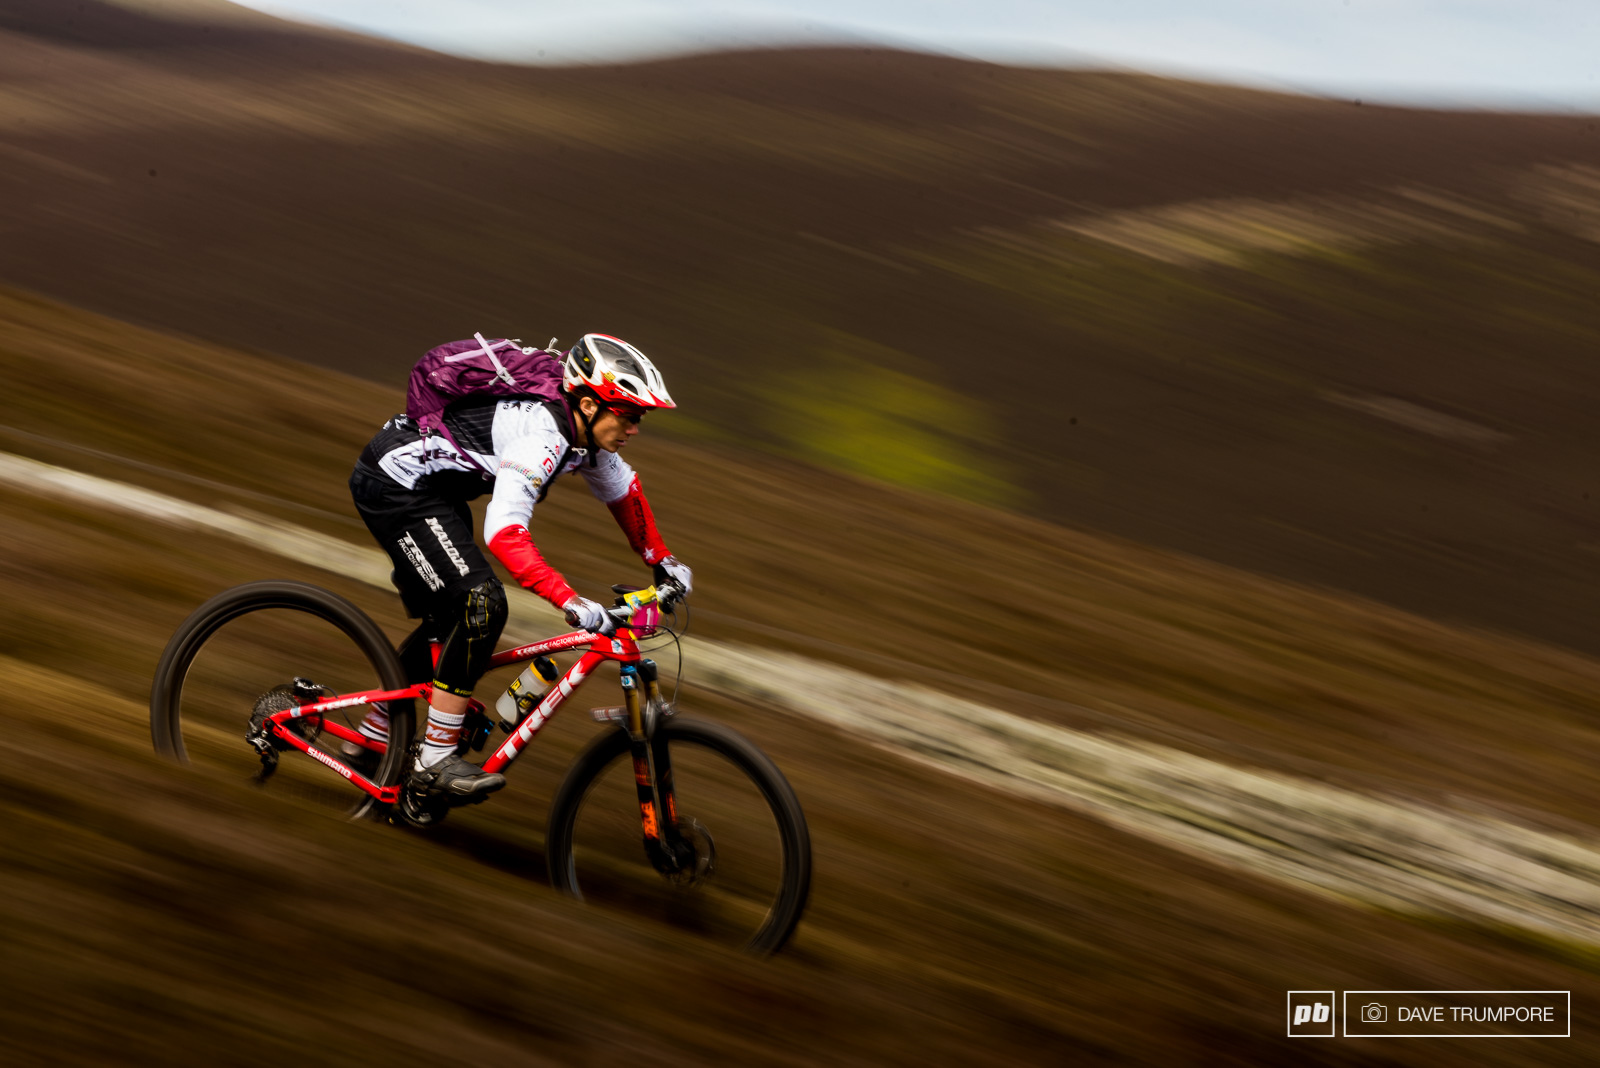 Total stage domination today for Tracey Moseley means she carries a 47 second lead into day two.